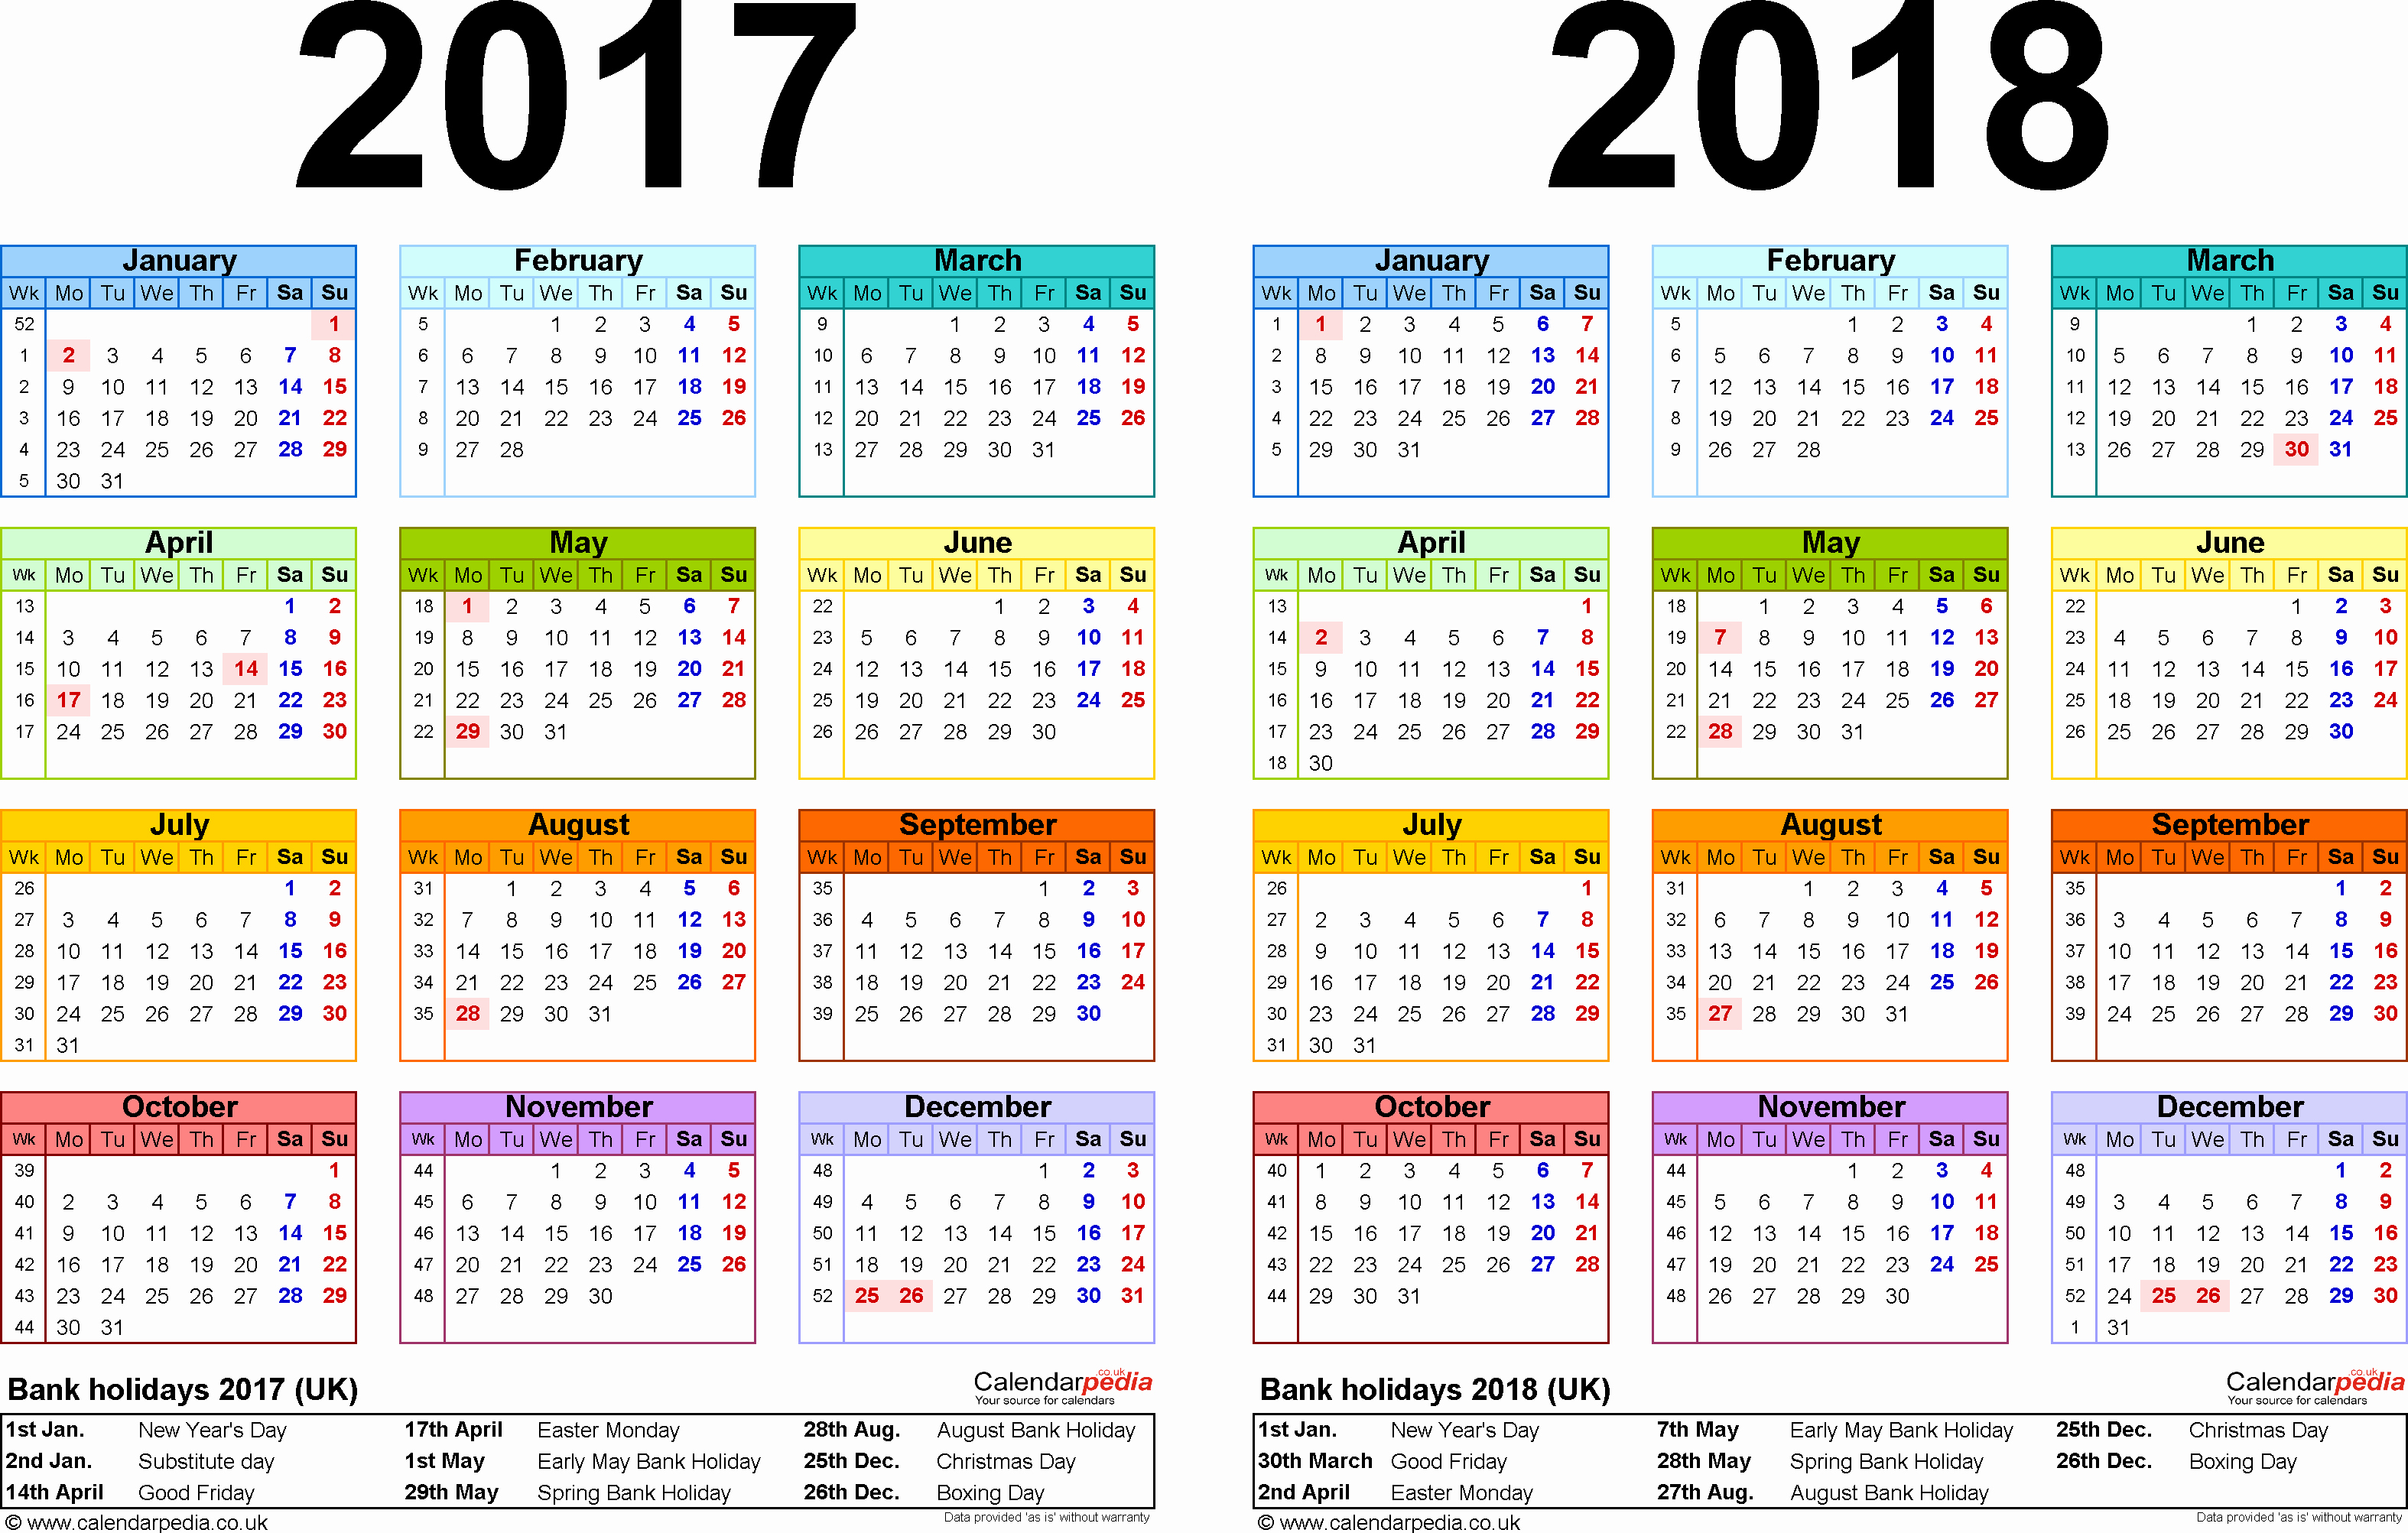 2017 Full Year Calendar Template Awesome Two Year Calendars for 2017 & 2018 Uk for Pdf